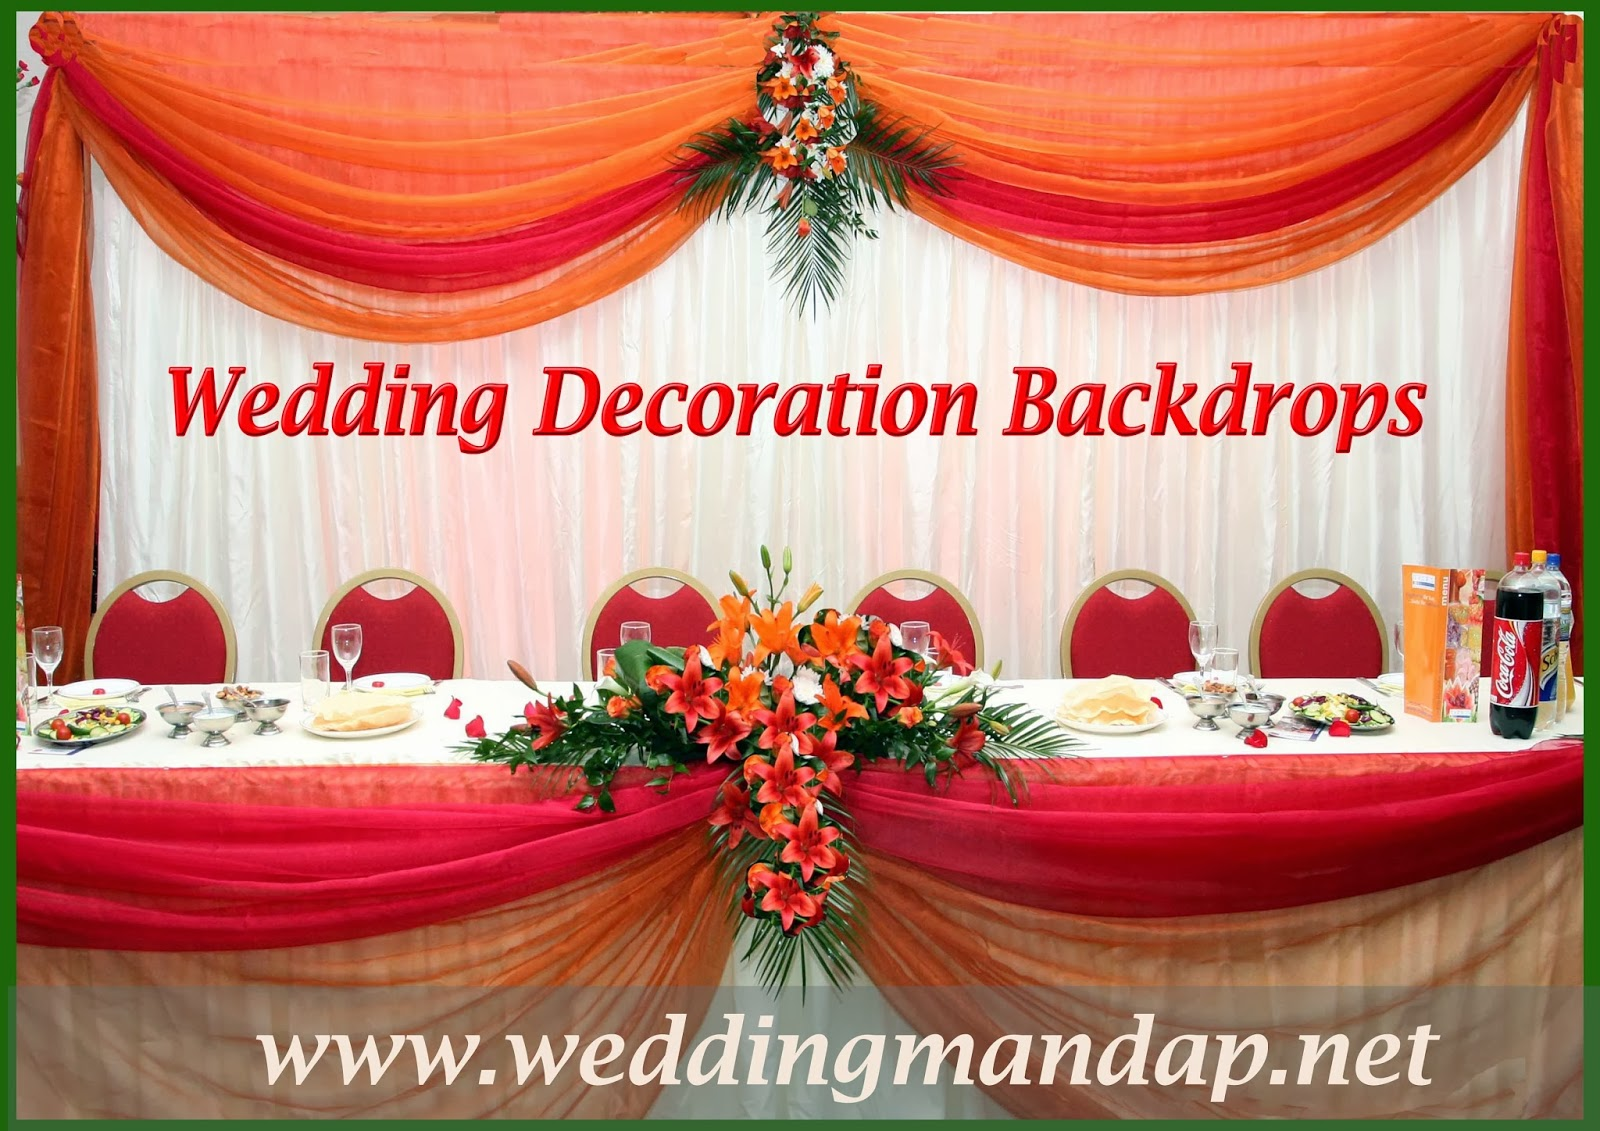 Decorative fabrics for Backdrops wedding decoration